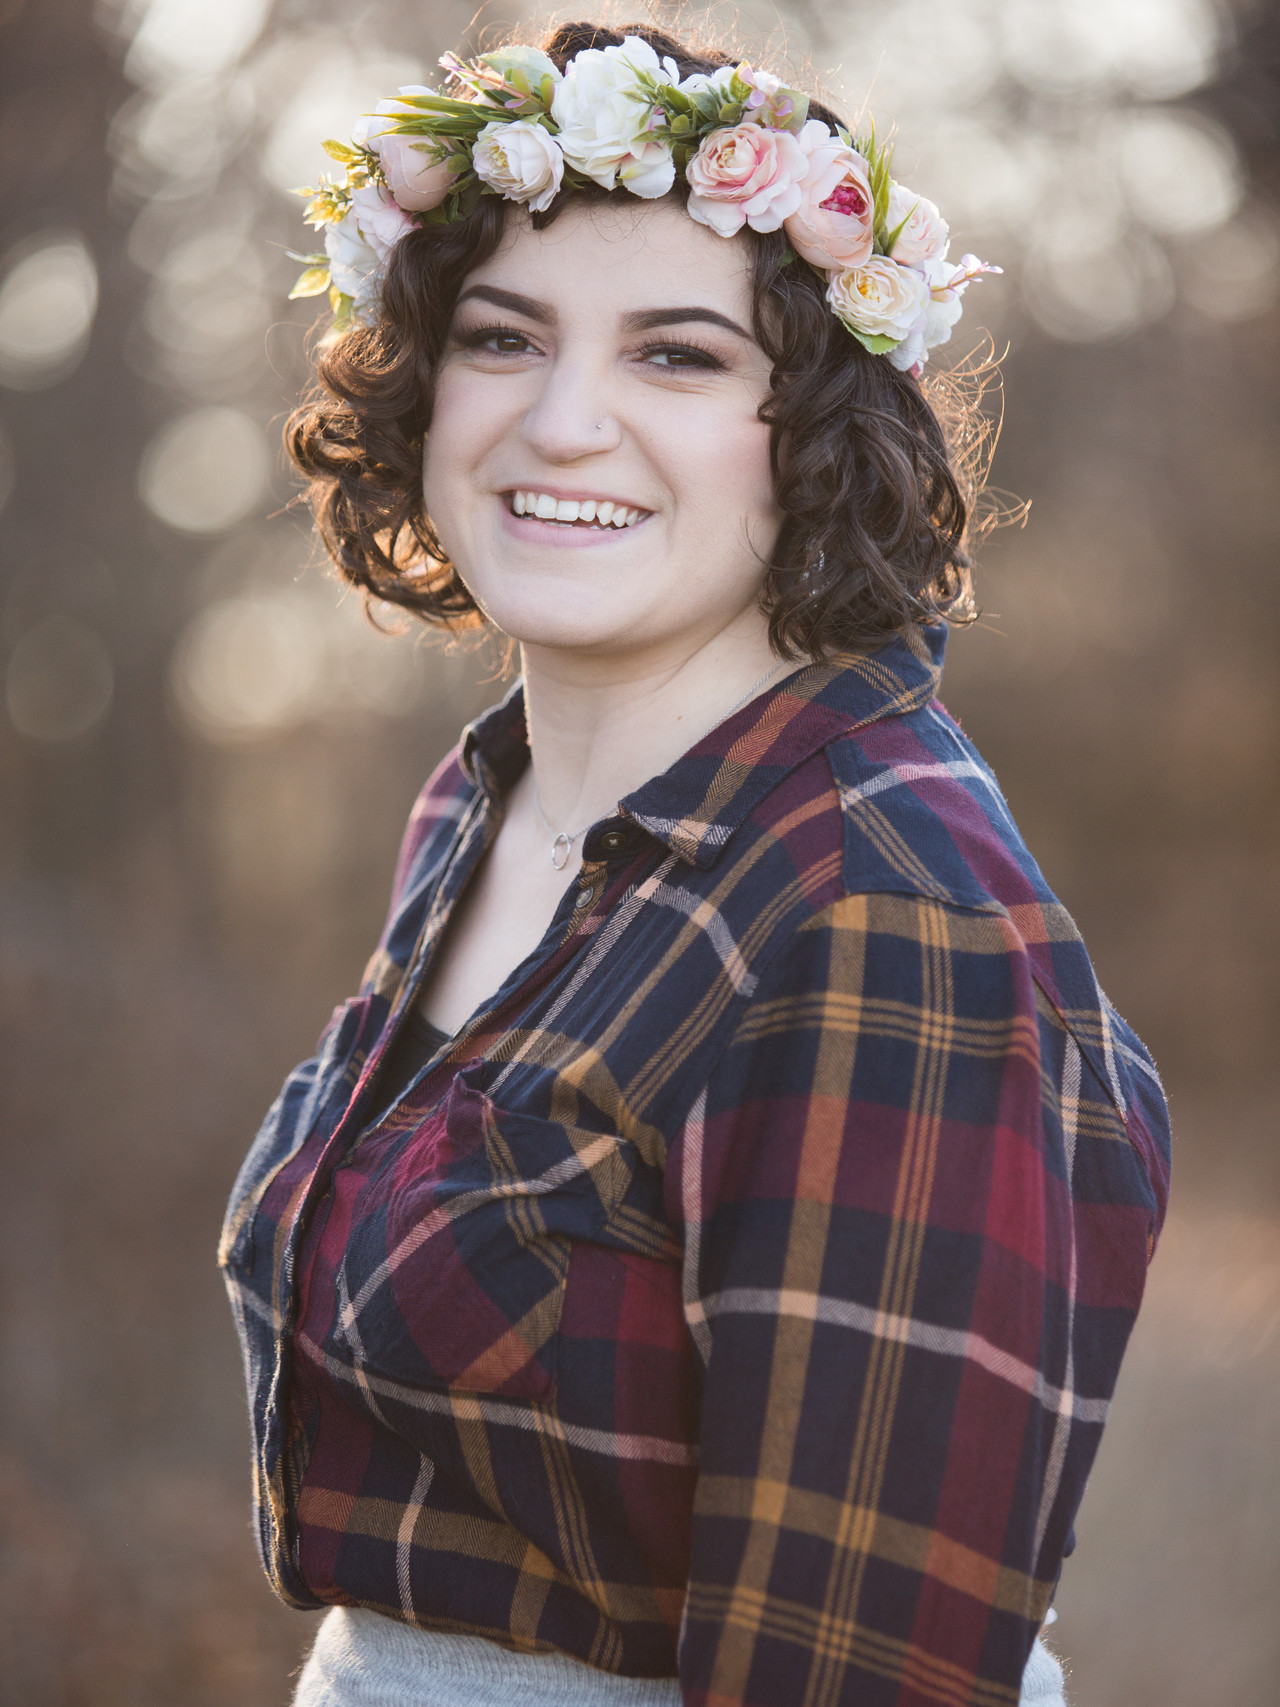 A woman poses while wearing a flower crown